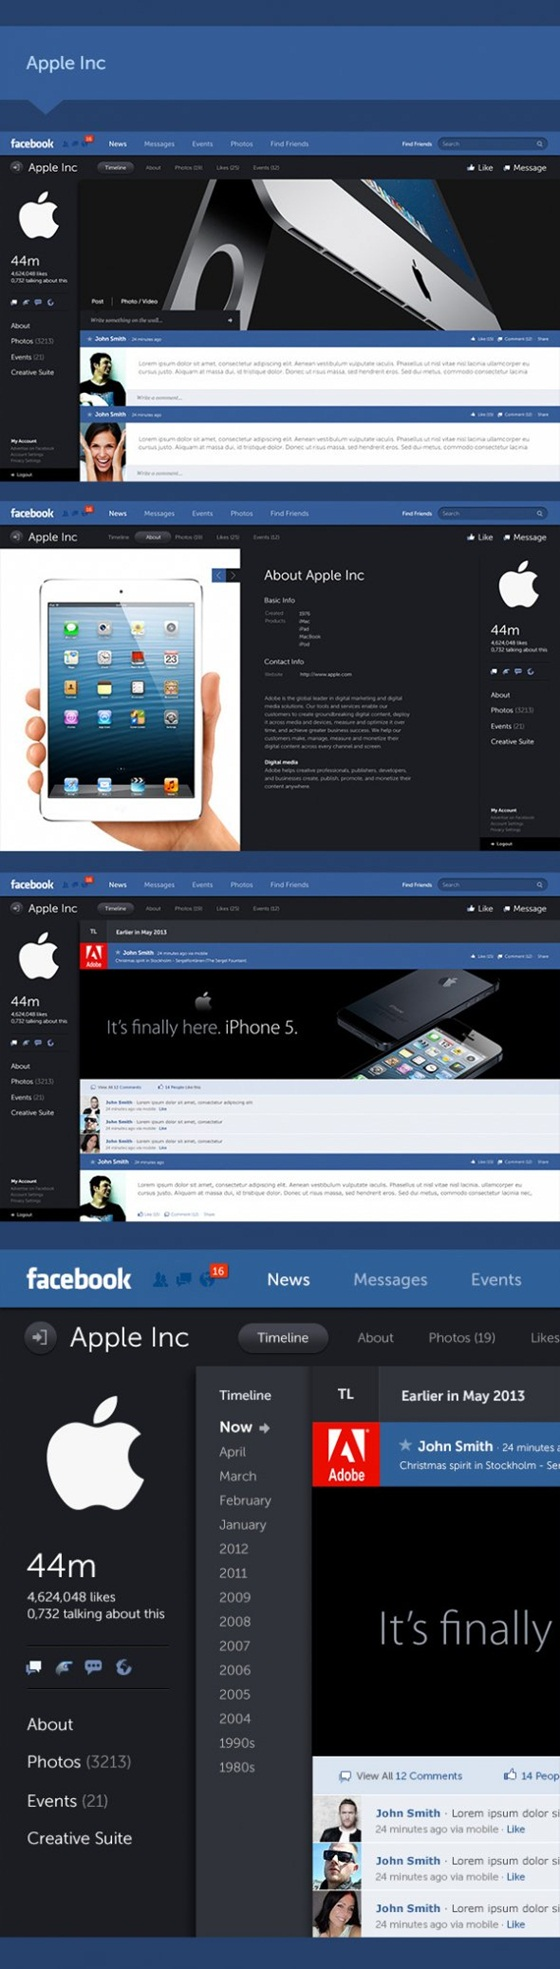 Facebook, thay đổi, giao diện mới, Timeline, Apple, Microsoft